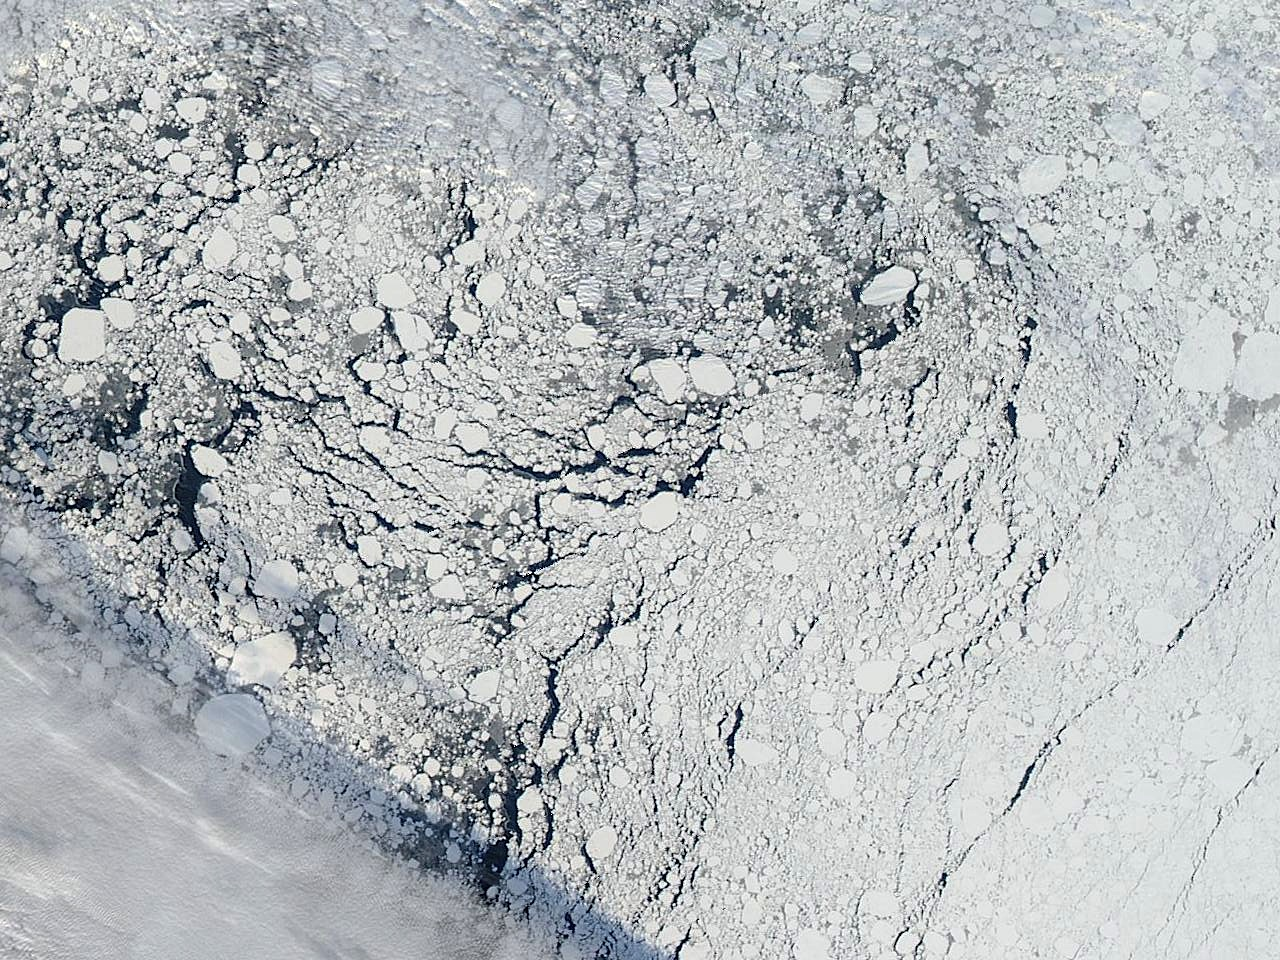 An image of an area of the Arctic sea ice pack well north of Alaska, captured by the MODIS instrument on NASA's Aqua satellite on Sept. 13, 2013. A cloud front can be seen in the lower left, and dark areas indicate regions of open water between sea ice formations. Image Credit: Image courtesy NASA Worldview